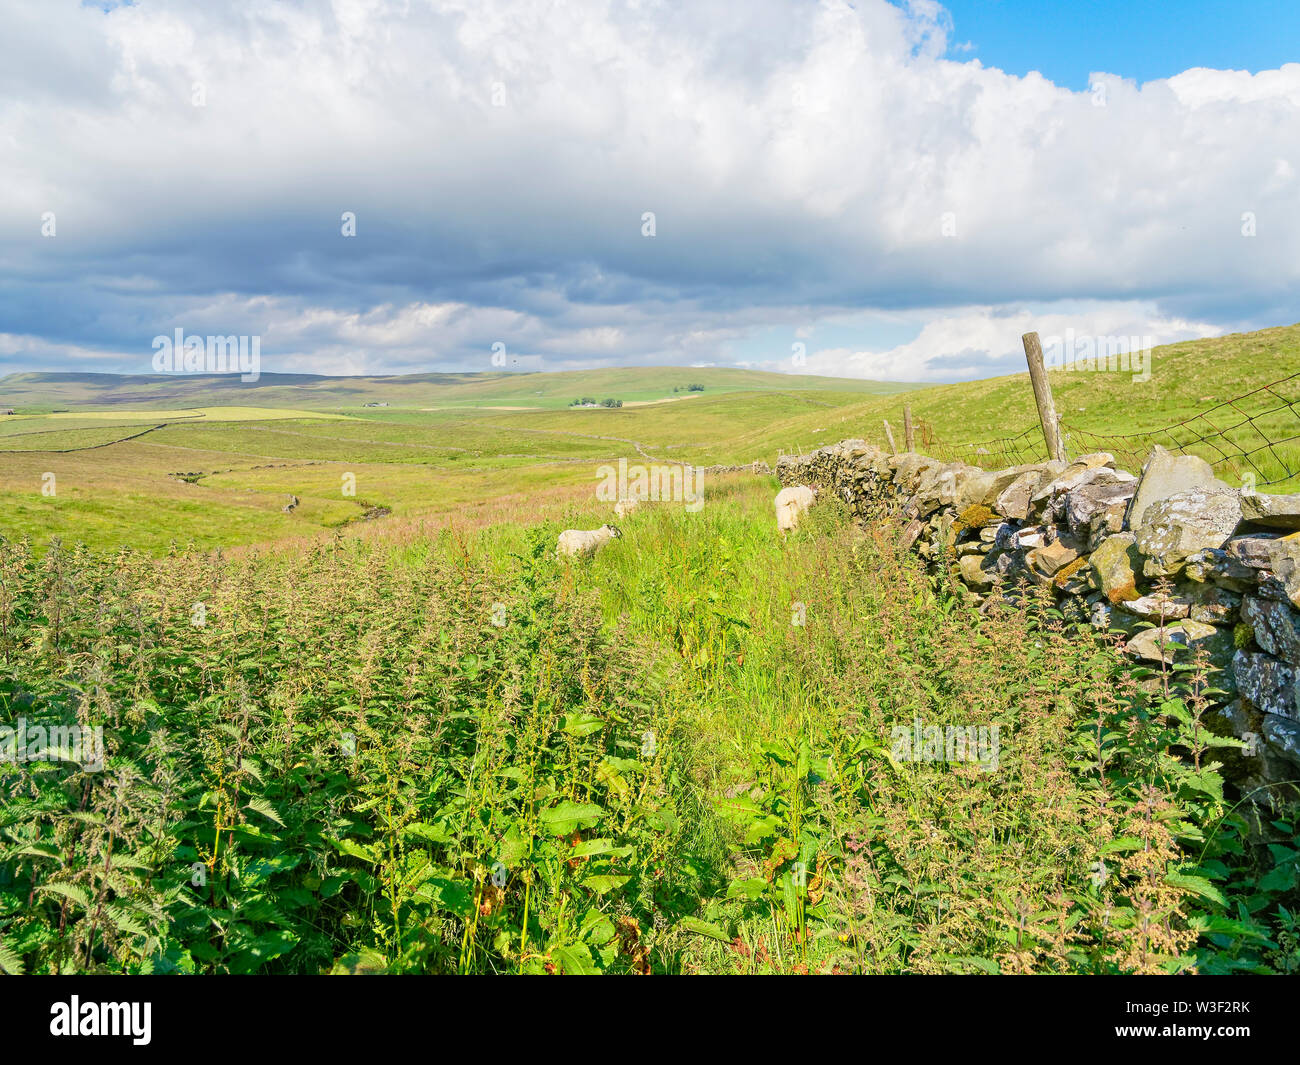 Dark clouds begin to gather over the Yorkshire Dales - Stock Image